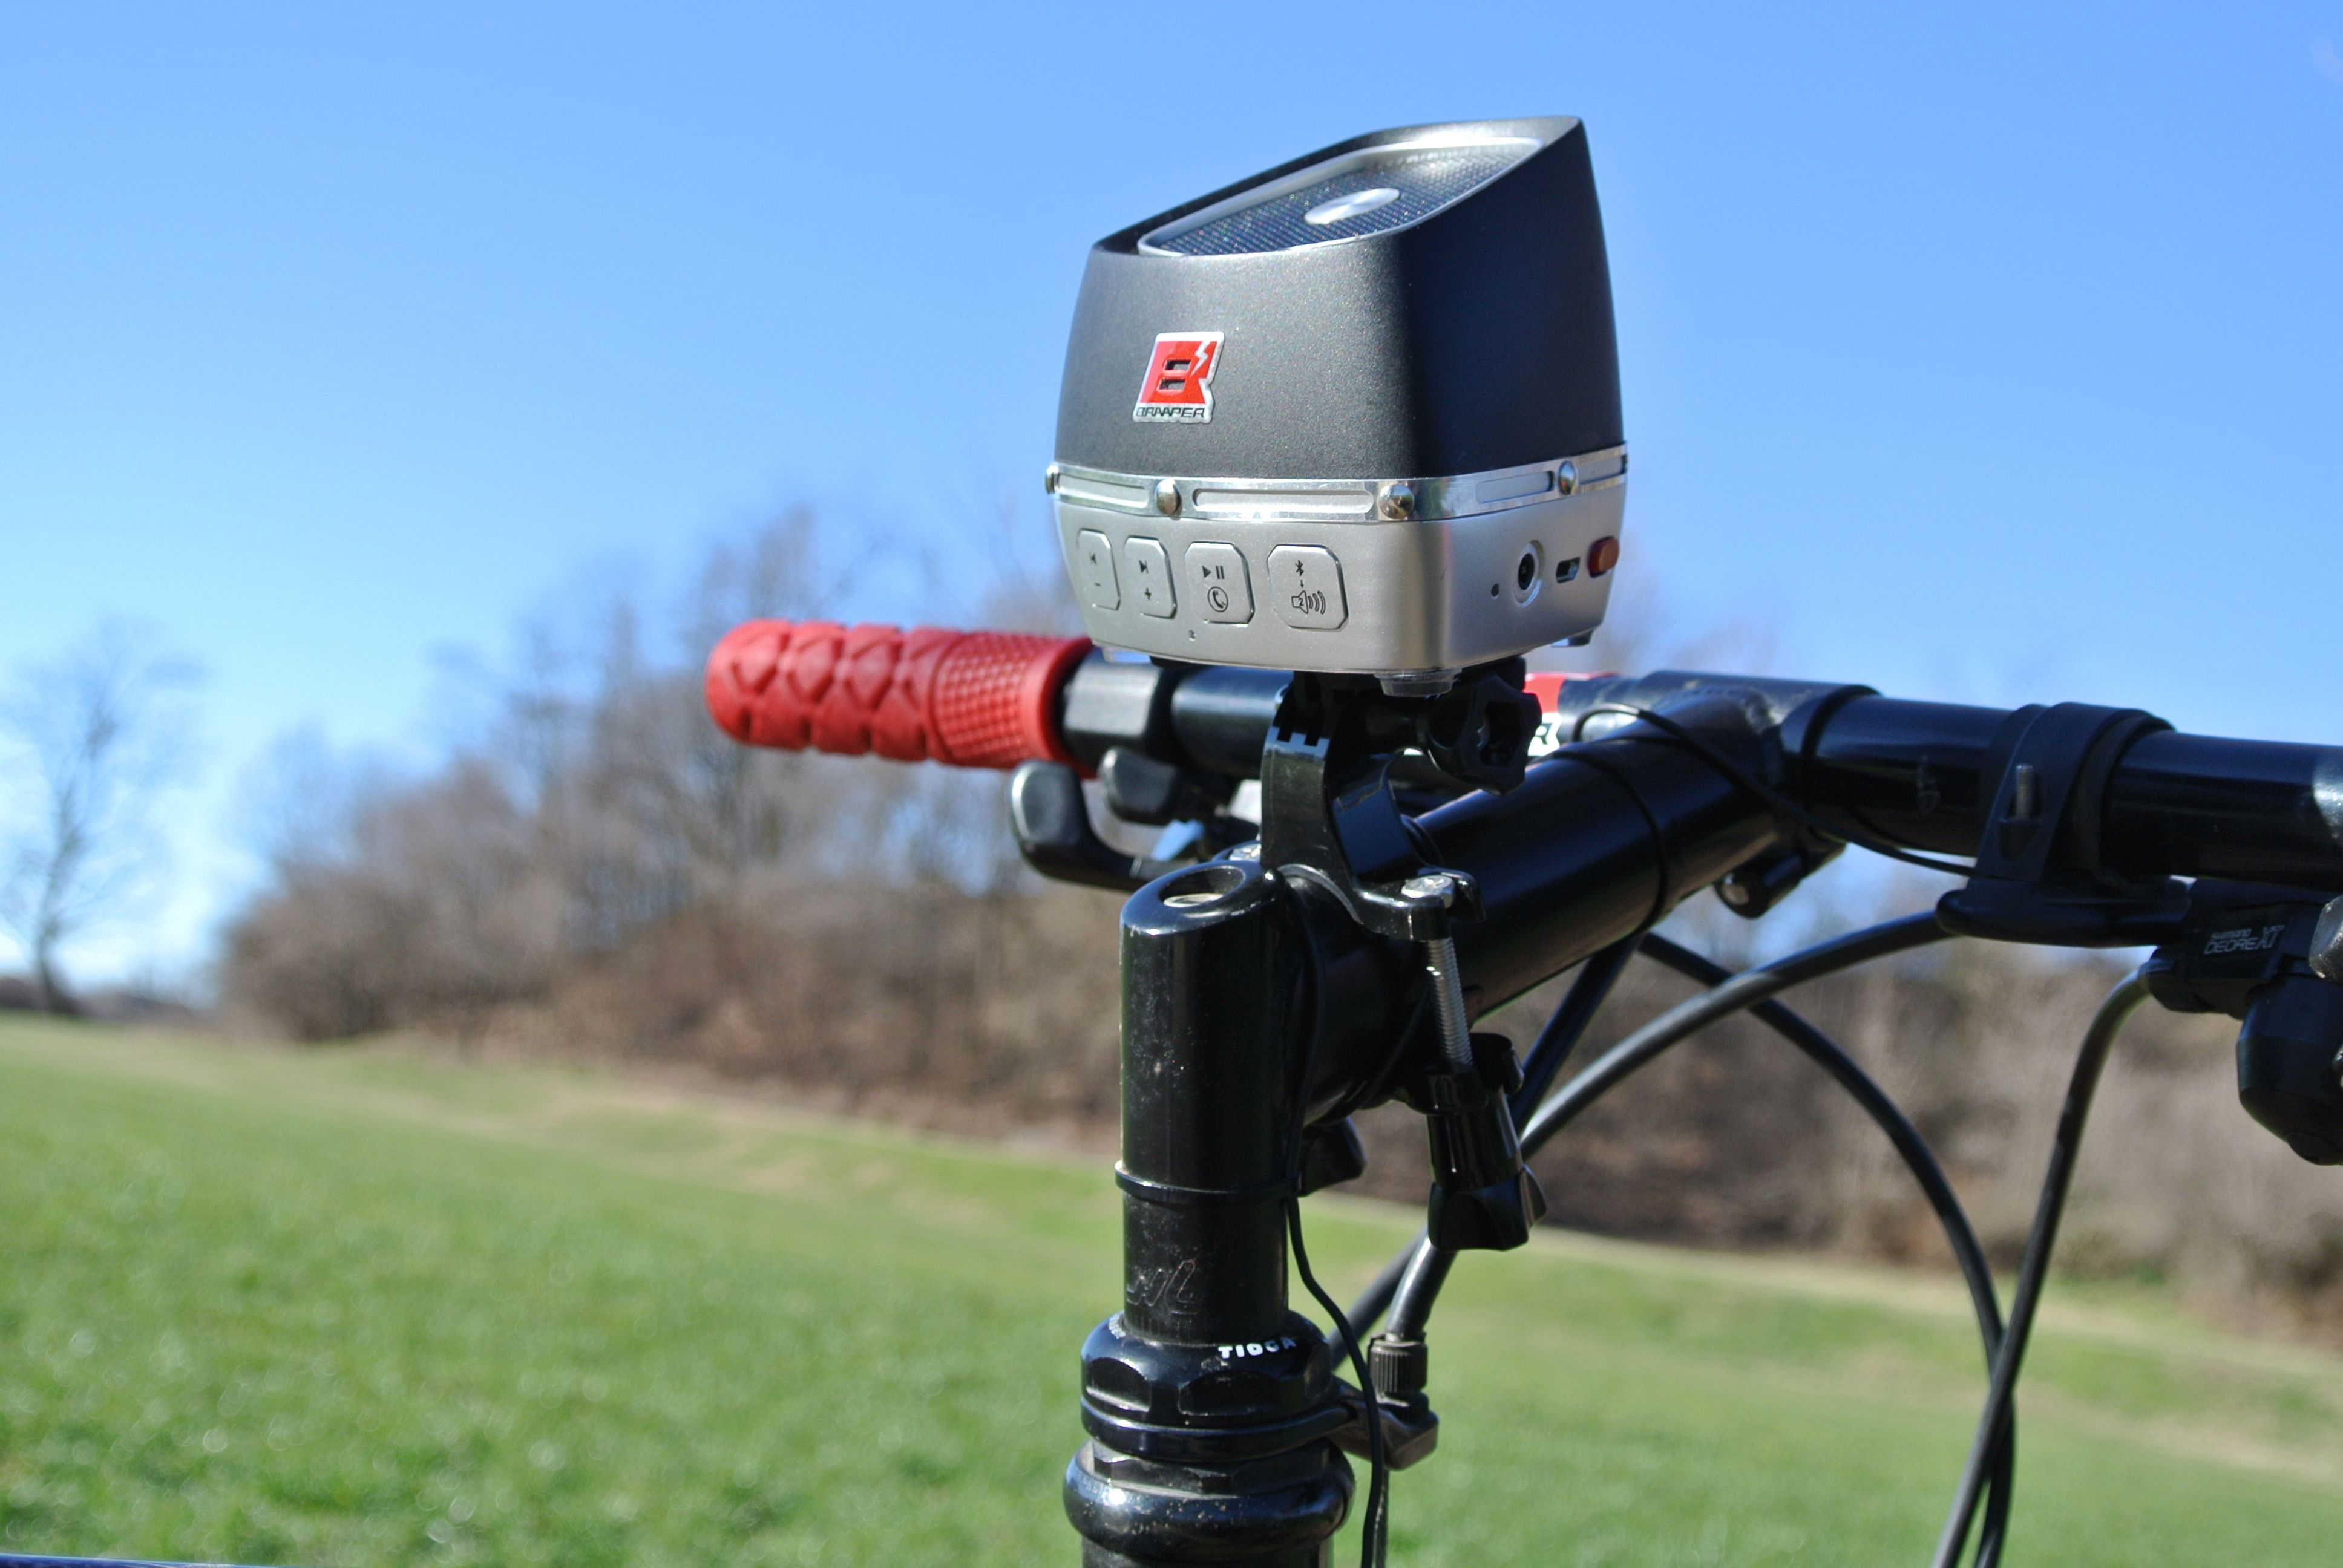 Use GOPRO support to attach Braaper on your bike.